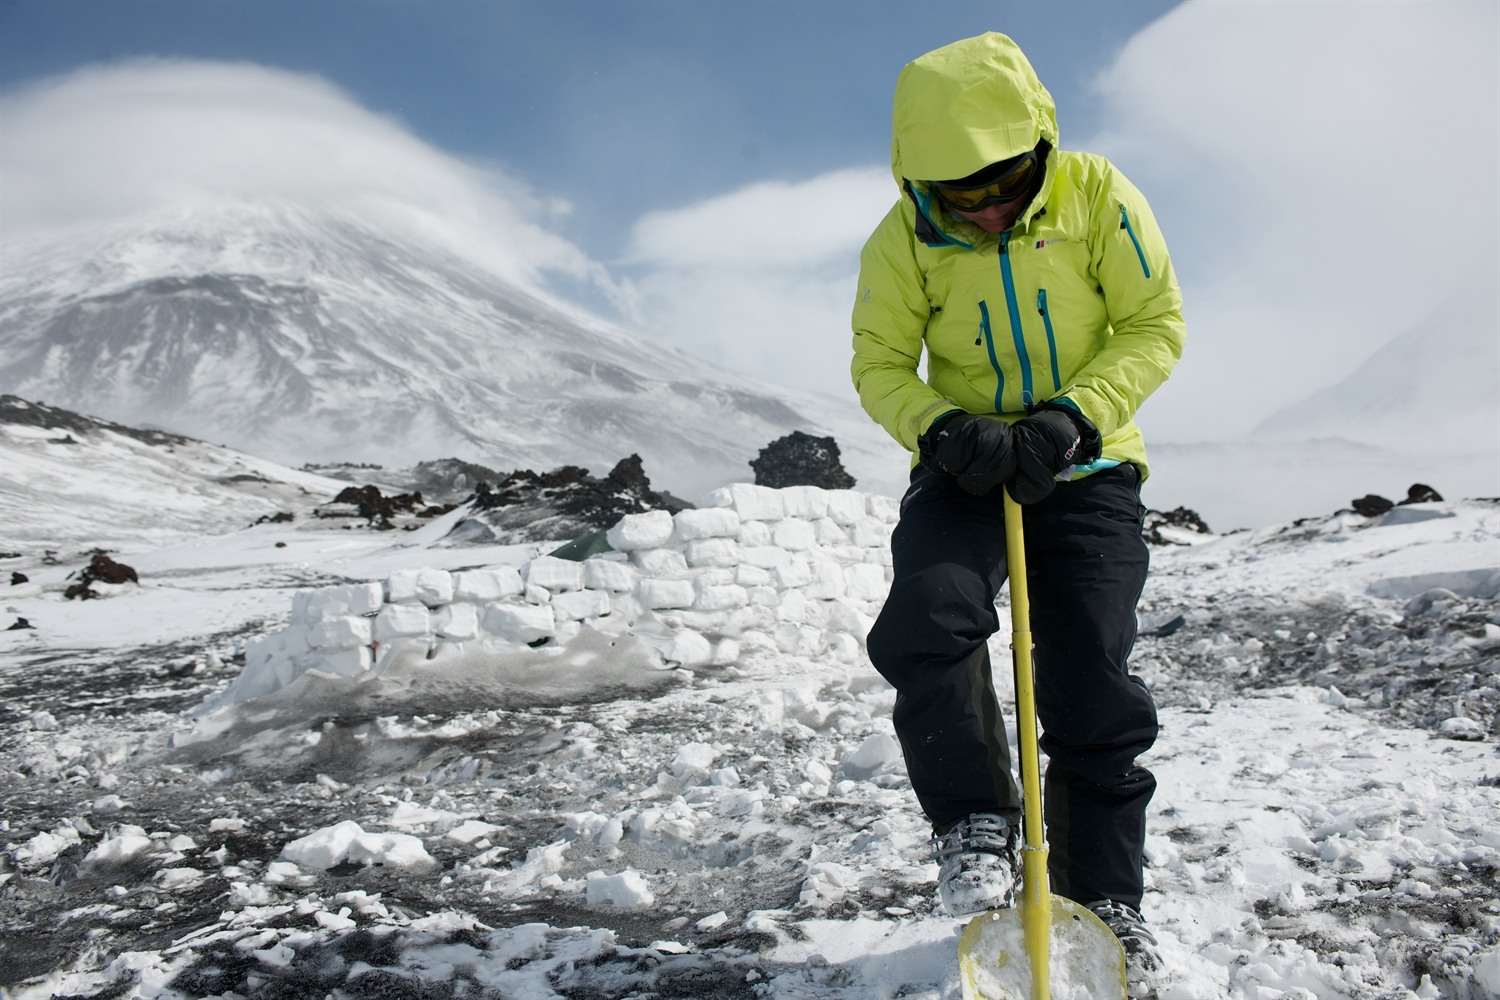 Me digging up snow to re-enforce the snow wall during a break in the weather. Photo courtesy of Martin Hartley